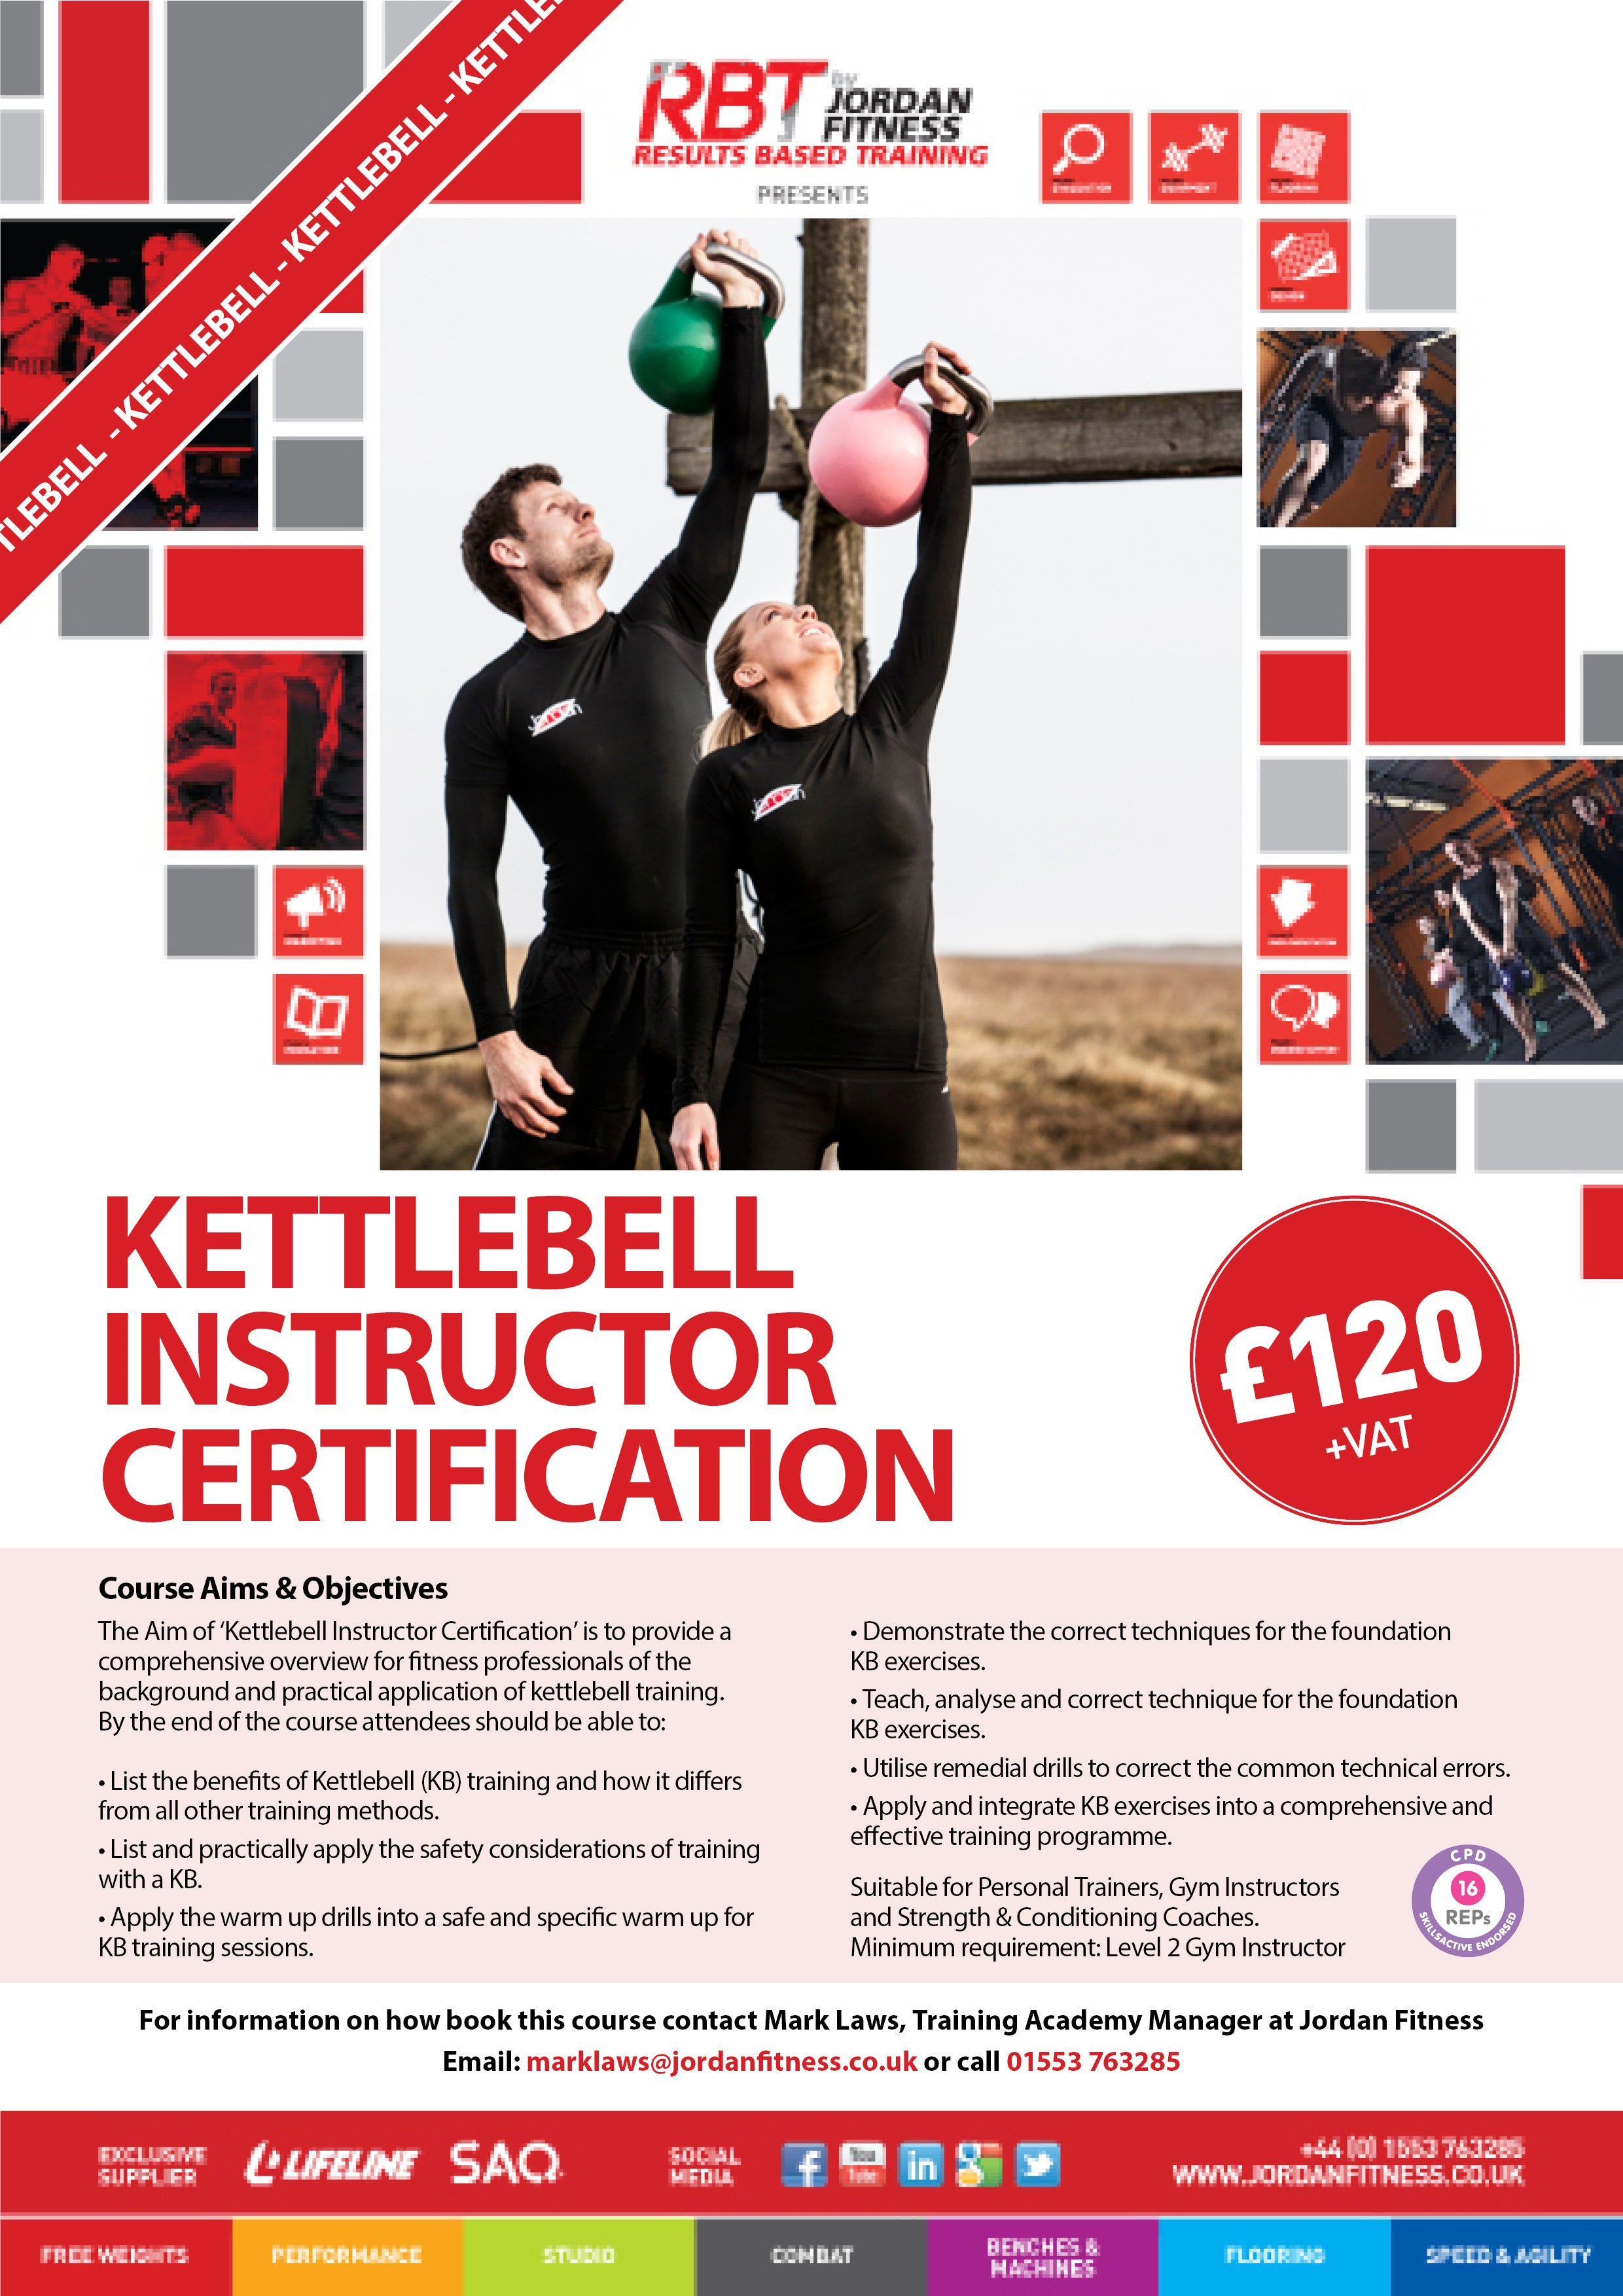 Kettlebell Instructor Certification Results Based Training By